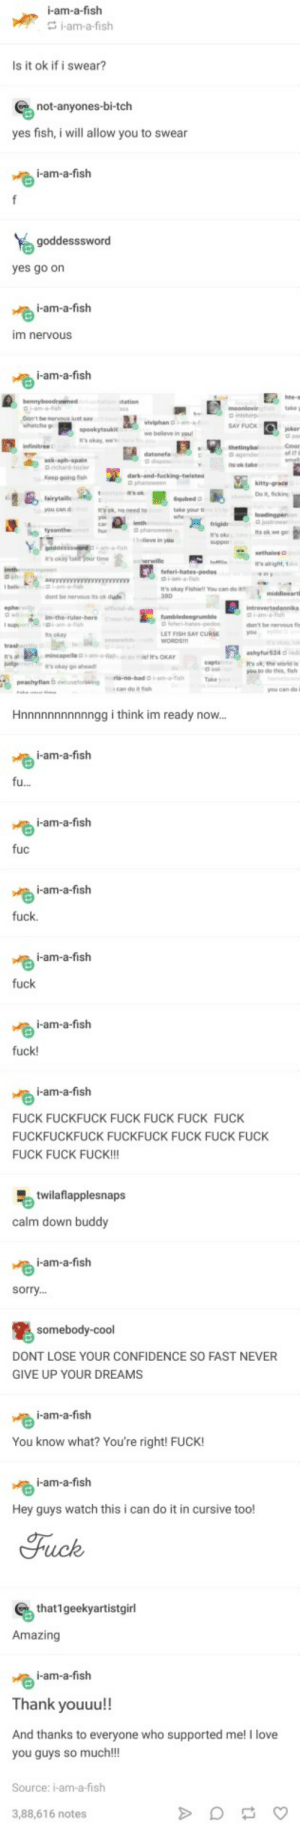 Fish finally swears: i-am-a-fish  i-am-a-fish  Is it ok if i swear?  not-anyones-bi-tch  yes fish, i will allow you to swear  i-am-a-fish  goddesssword  yes go on  i-am-a-fish  m nevous  i-am-a-fish  İ.uspookytsuki. Ag whiph  SAY FUCK  it's okay, we  datenefa  Keep going ish  D phanoween  Do it, ficking  take your t  eve in you  it's alright,1  It's okay Fishie!! You can do i  dont be nervous its ok dufe  cia  don't be mervous fis  ts okay  It's ok, the world is  t Sish  Hnnnnnnnnnnngg i think im ready now.  i-am-a-fish  i-am-a-fislh  UC  i-am-a-fish  fuck.  i-am-a-fislh  fuck  i-am-a-fish  fuck!  i-am-a-fish  FUCK FUCKFUCK FUCK FUCK FUCK FUCK  FUCKFUCKFUCK FUCKFUCK FUCK FUCK FUCK  FUCK FUCK FUCK!!!  twillaflapplesnaps  calm down buddy  i-am-a-fish  sorry...  somebody-cool  DONT LOSE YOUR CONFIDENCE SO FAST NEVER  GIVE UP YOUR DREAMS  i-am-a-fish  You know what? You're right! FUCK!  i-am-a-fish  Hey guys watch this i can do it in cursive too!  Fuck  that1geekyartistgirl  Amazing  i-am-a-fish  Thank youuu!!  And thanks to everyone who supported me! I love  you guys so much!!  Source: i-am-a-fish  3,88,616 notes Fish finally swears